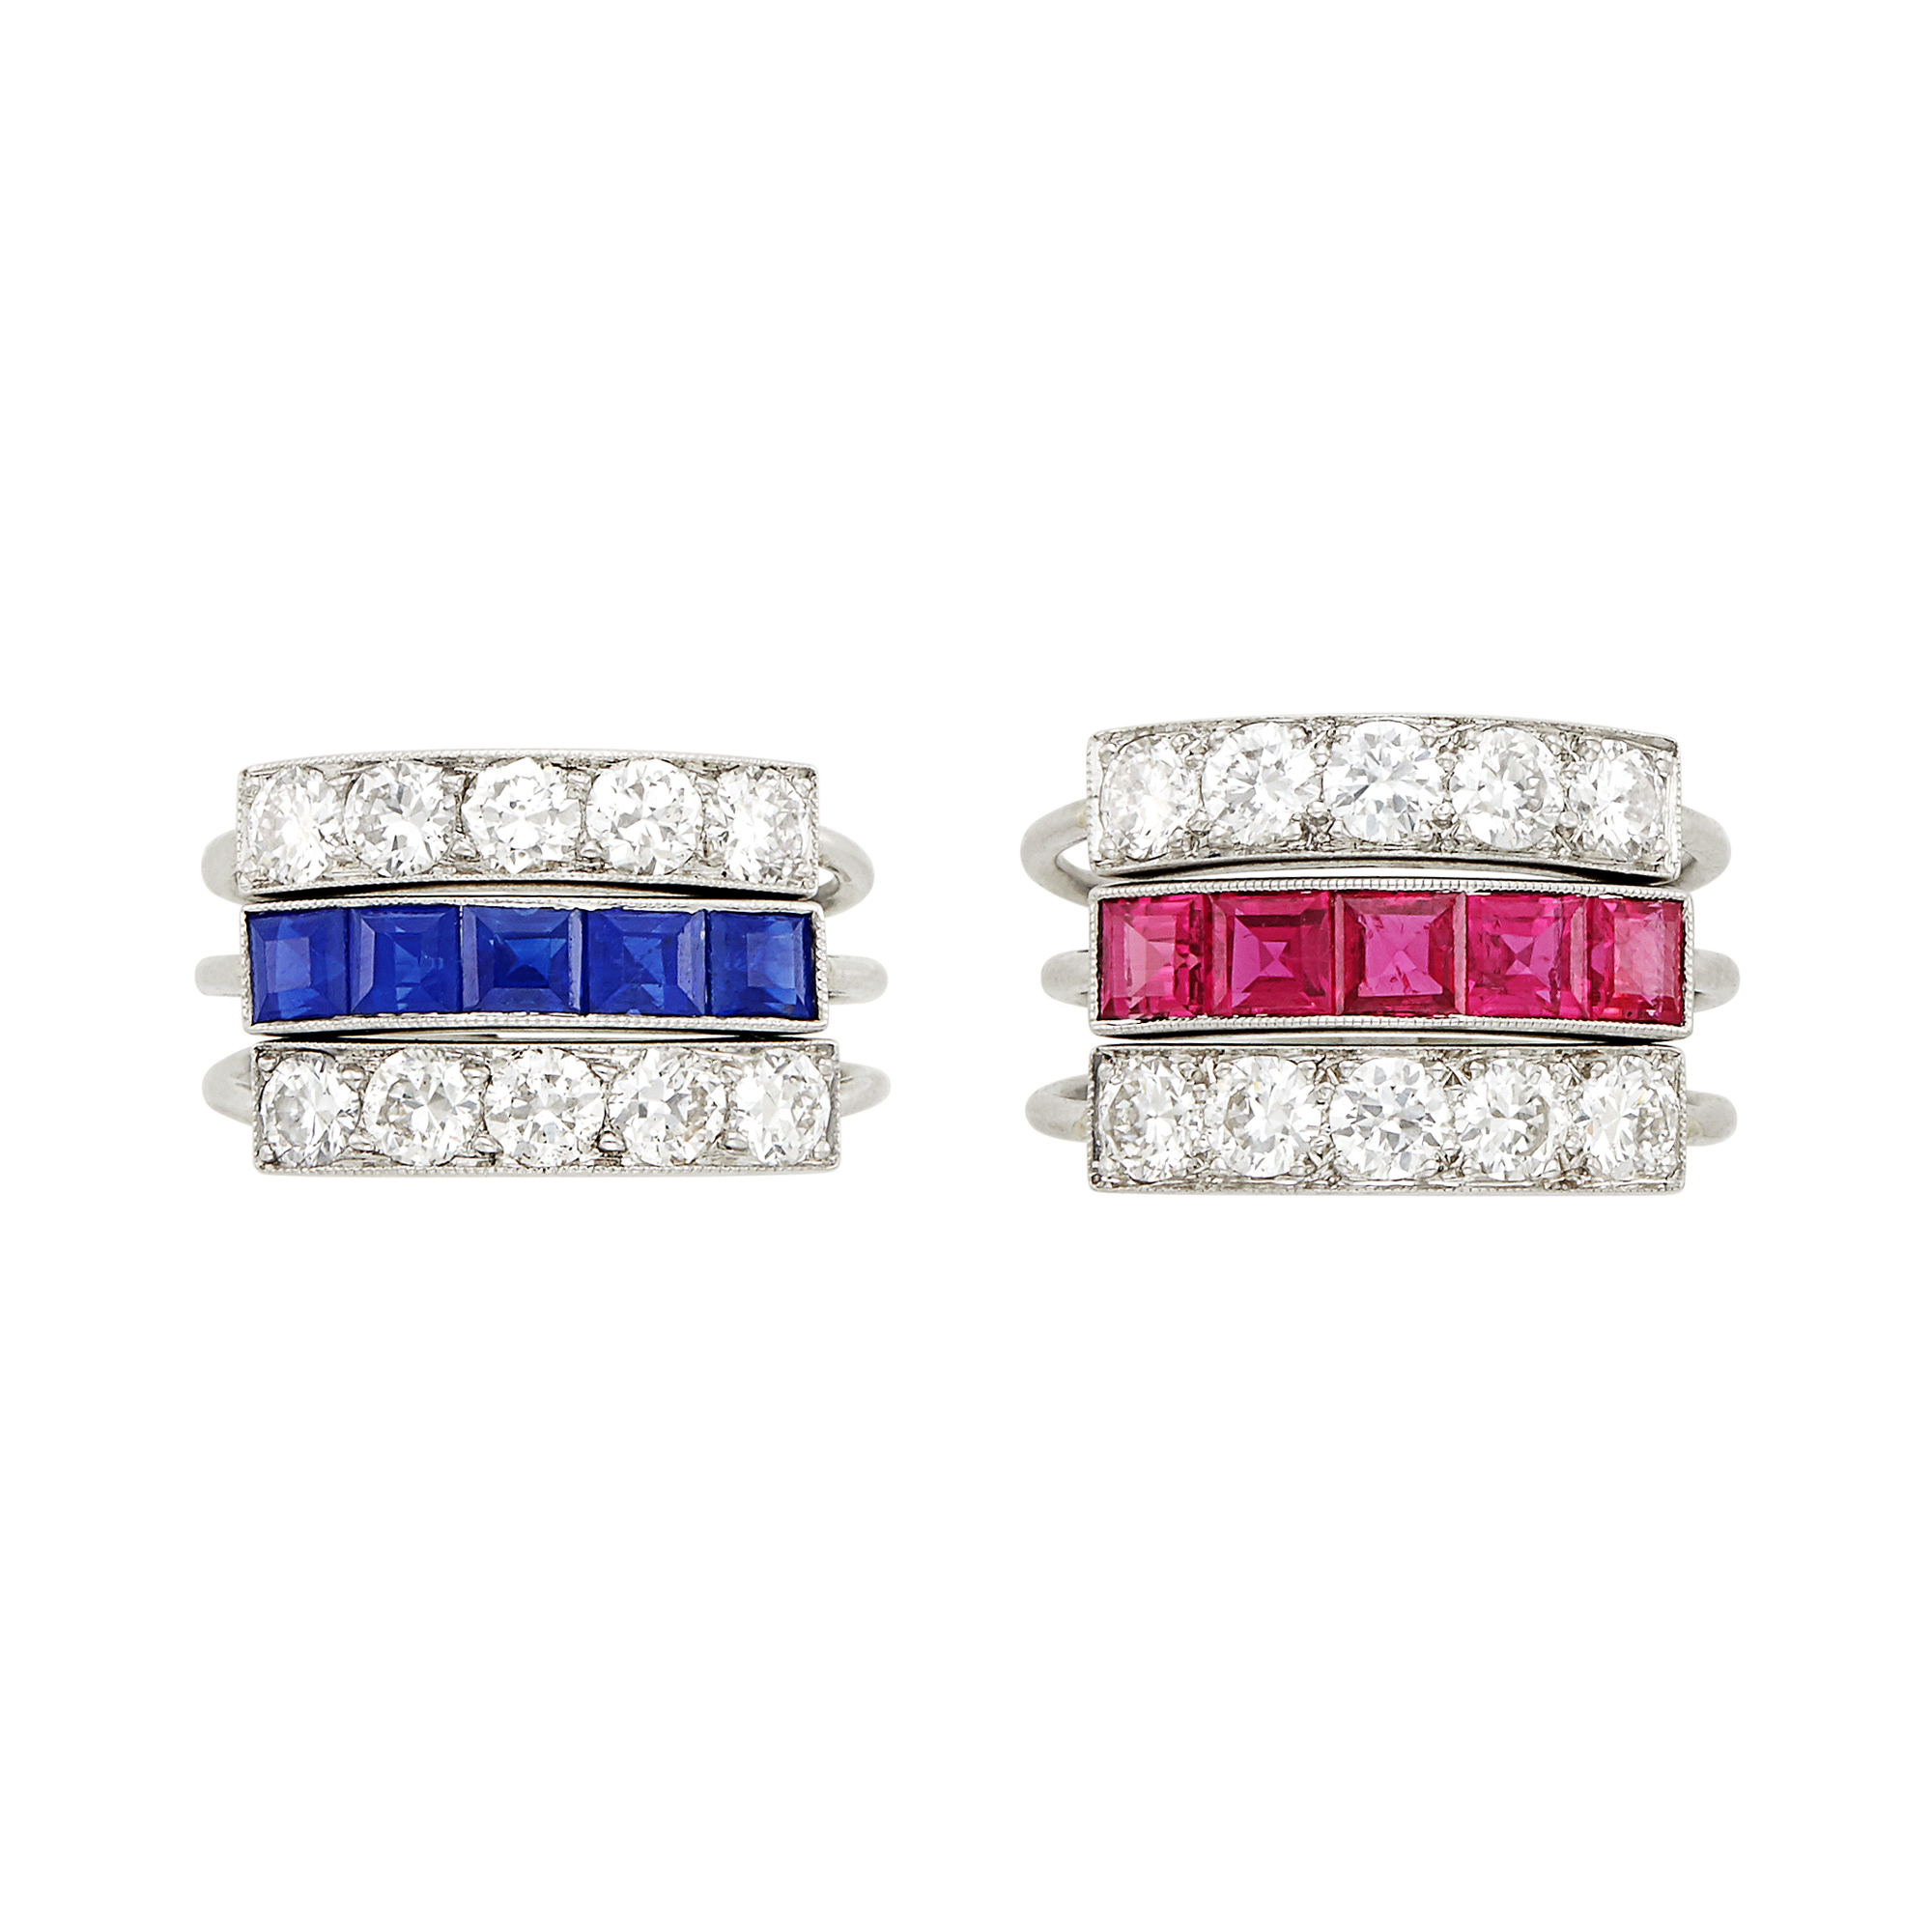 Lot image - Pair of Platinum, Ruby, Sapphire and Diamond Pinky Rings, J.E. Caldwell